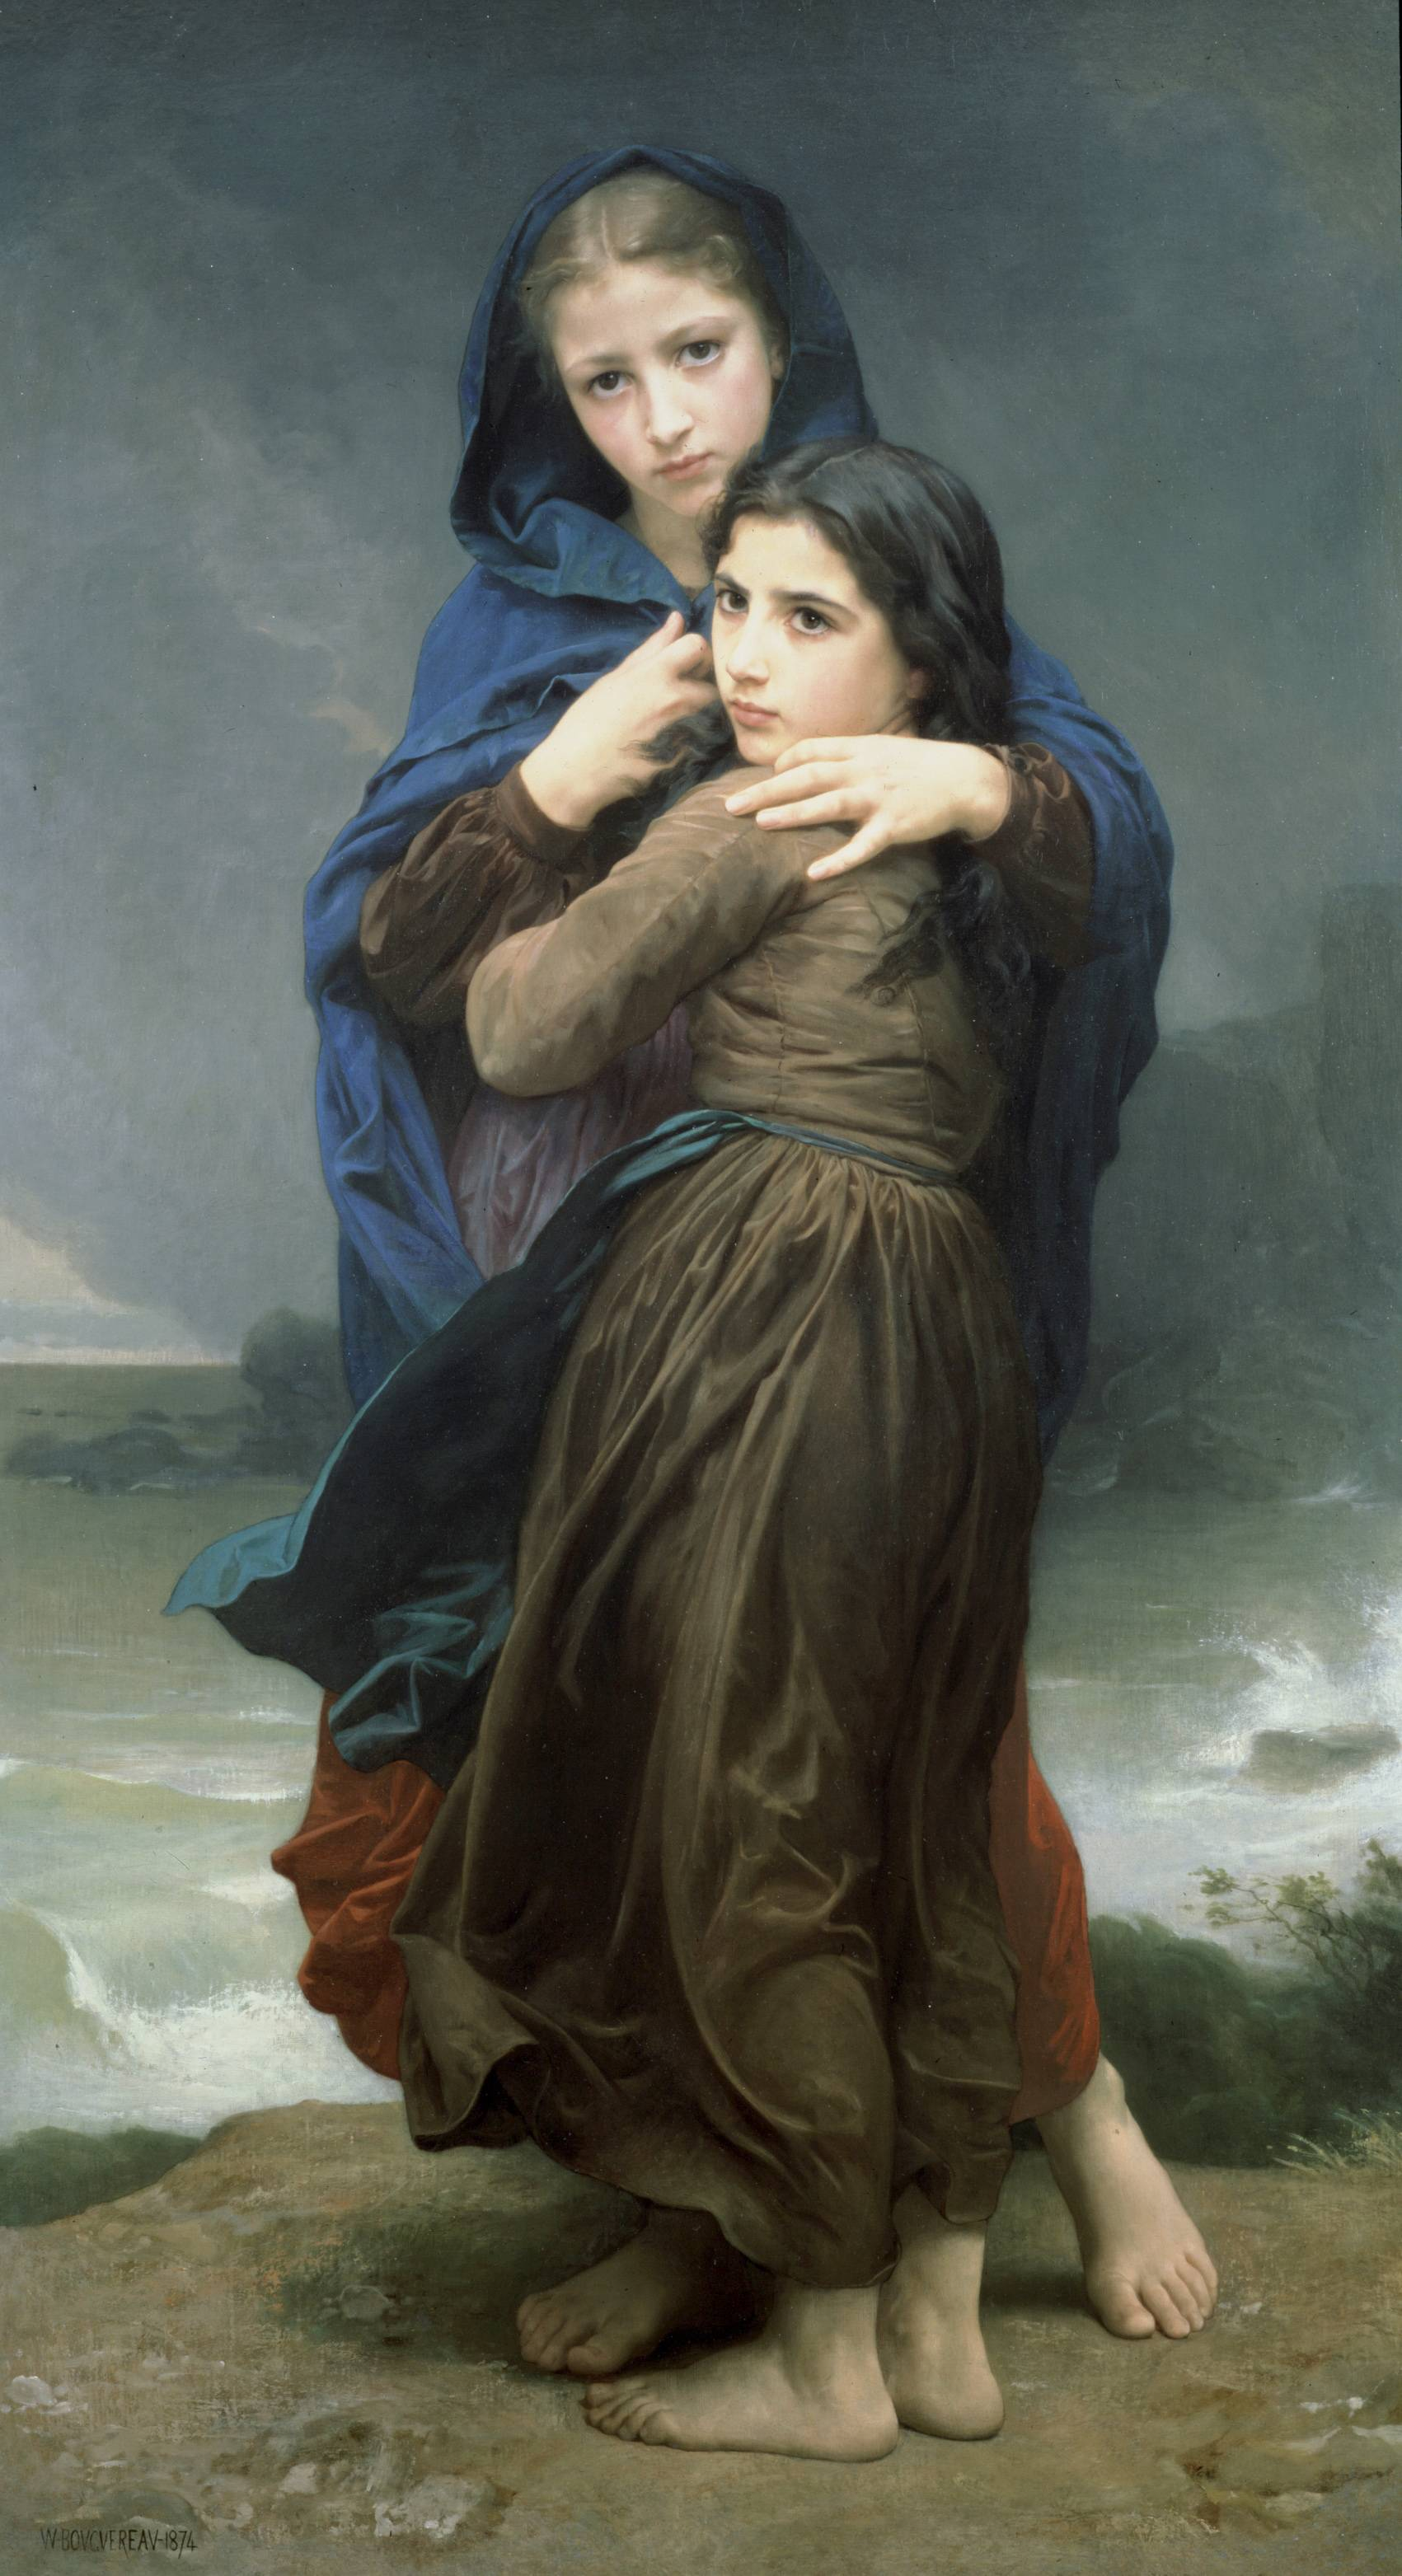 https://upload.wikimedia.org/wikipedia/commons/a/ac/William-Adolphe_Bouguereau_%281825-1905%29_-_L%27Orage_%28The_Storm%29%281874%29.jpg